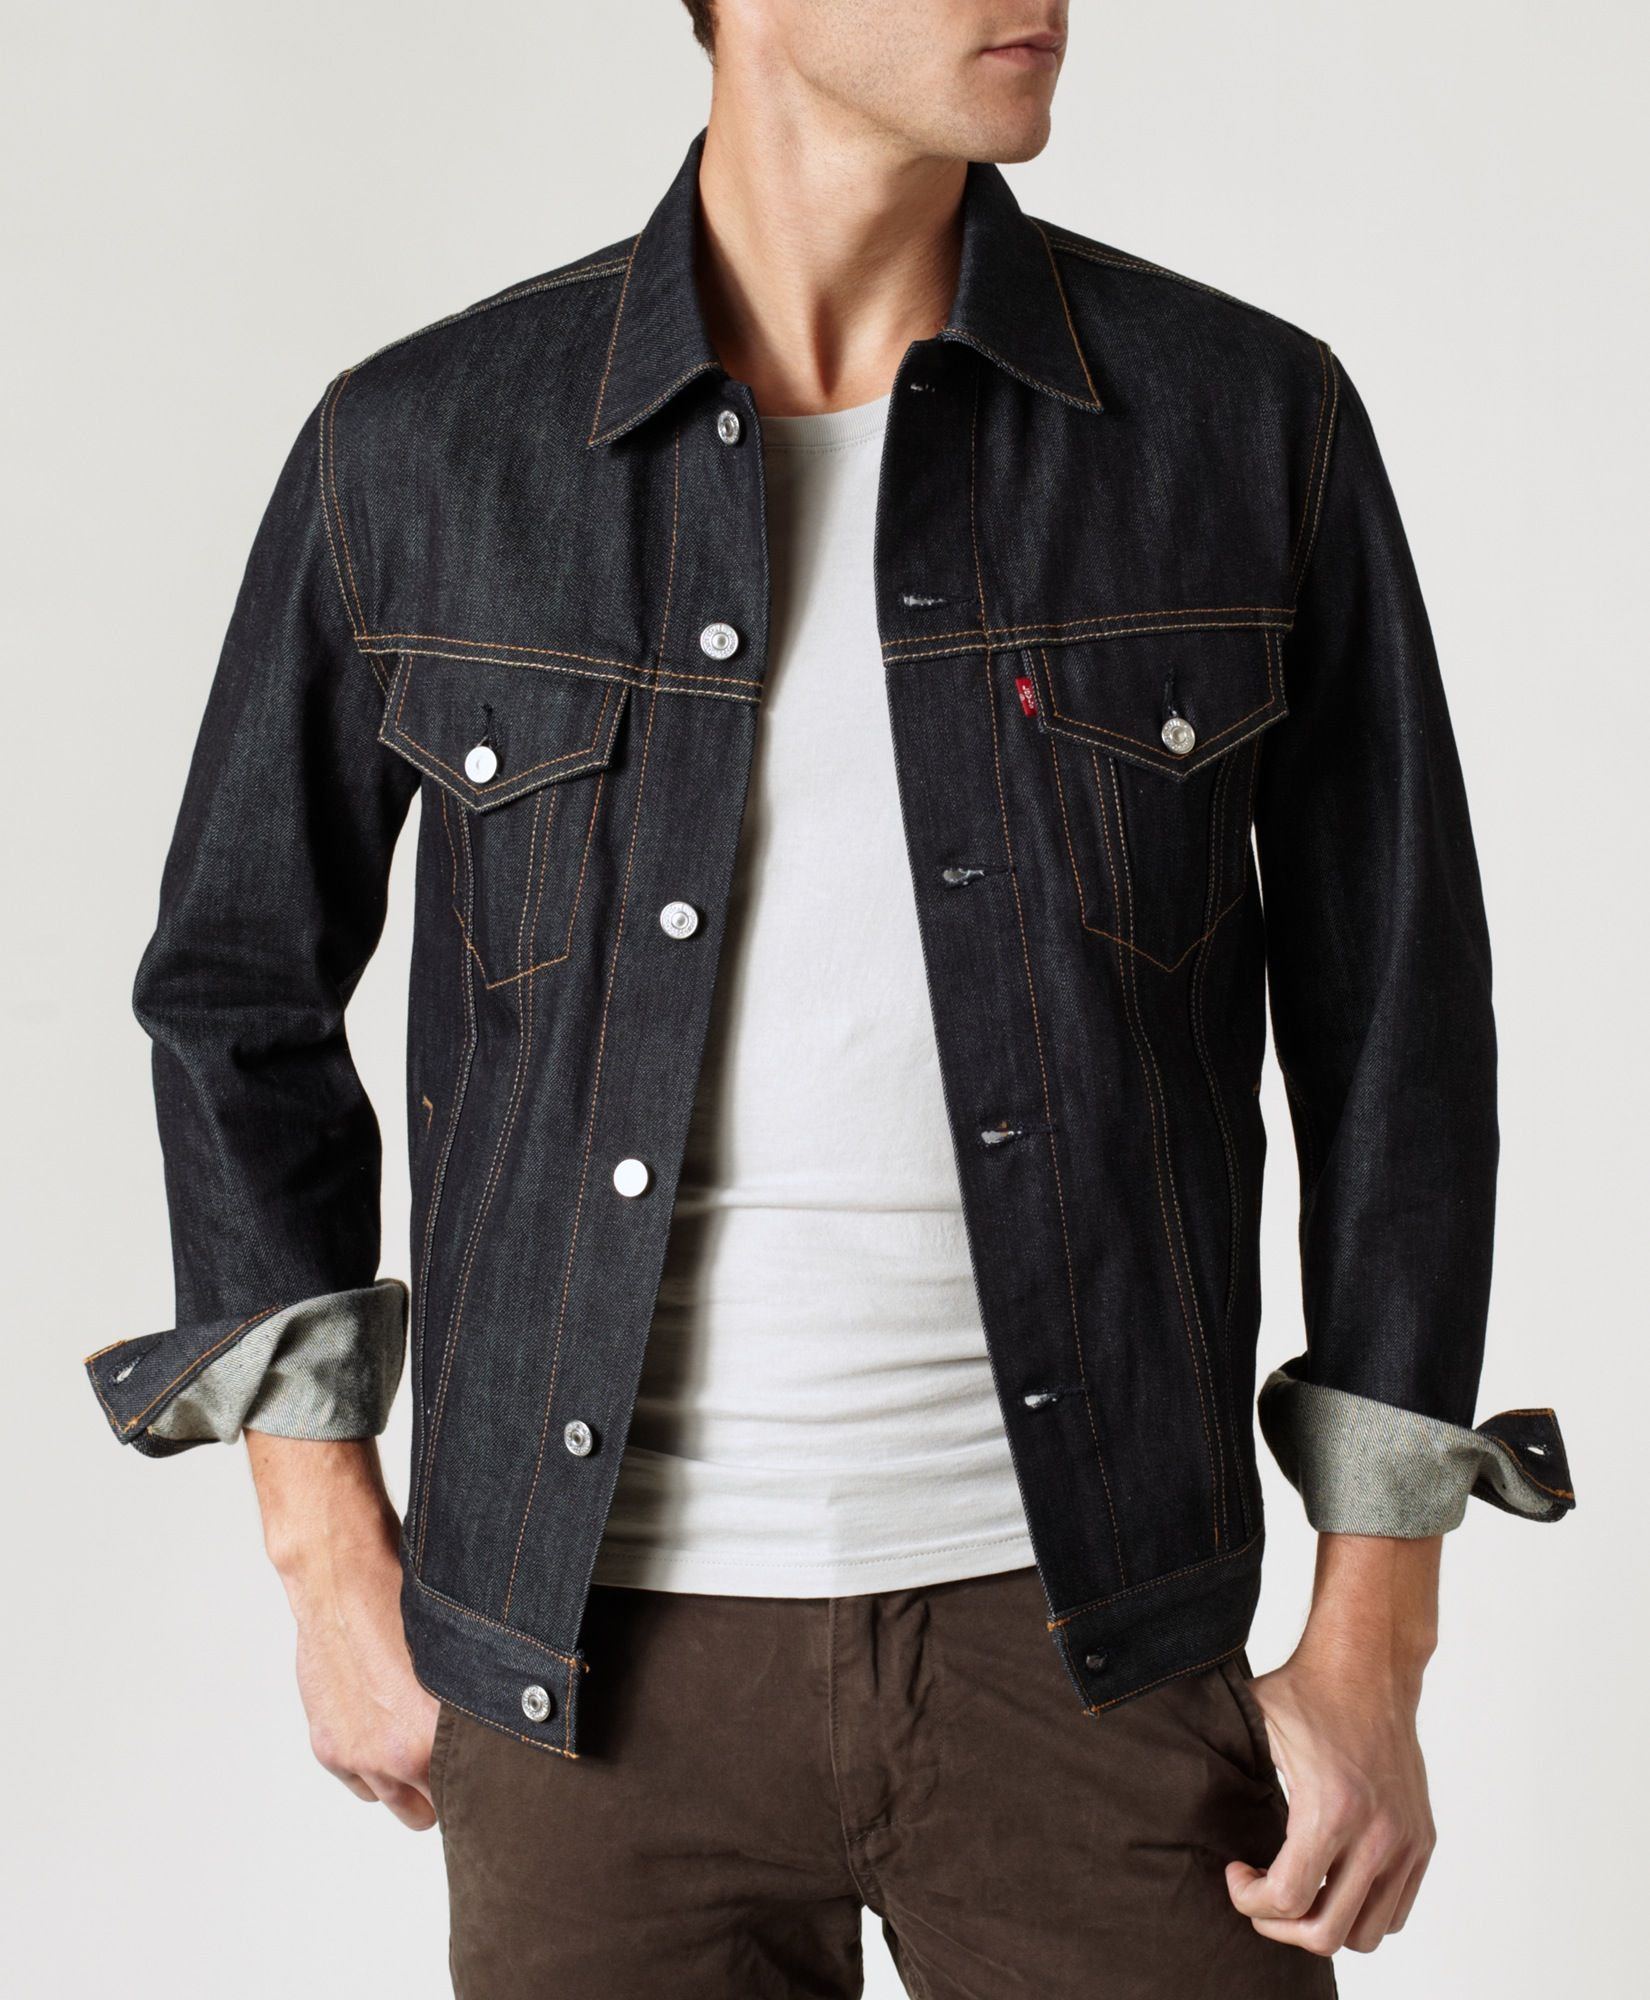 Levi's Slim Fit Trucker Jacket Rigid Slim Fit Truckers